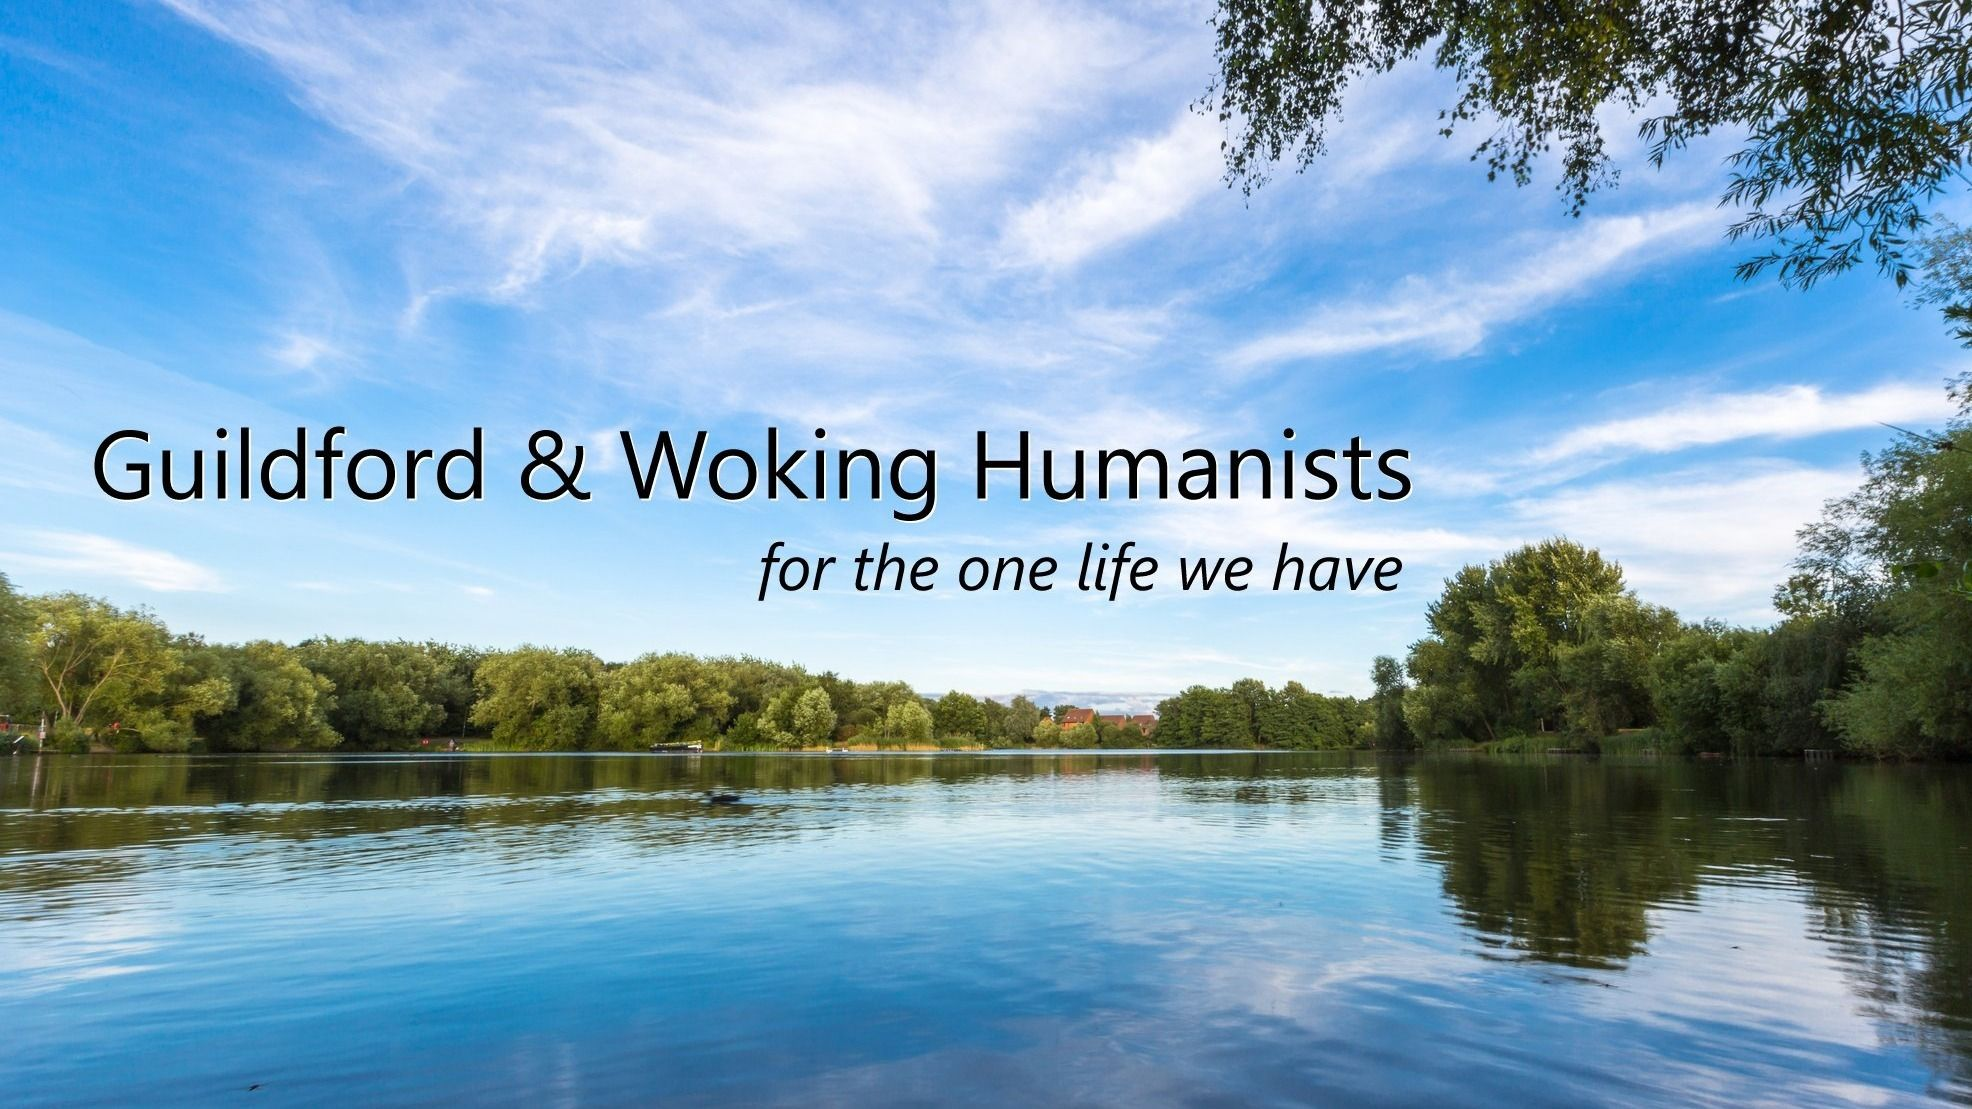 Guildford & Woking Humanists